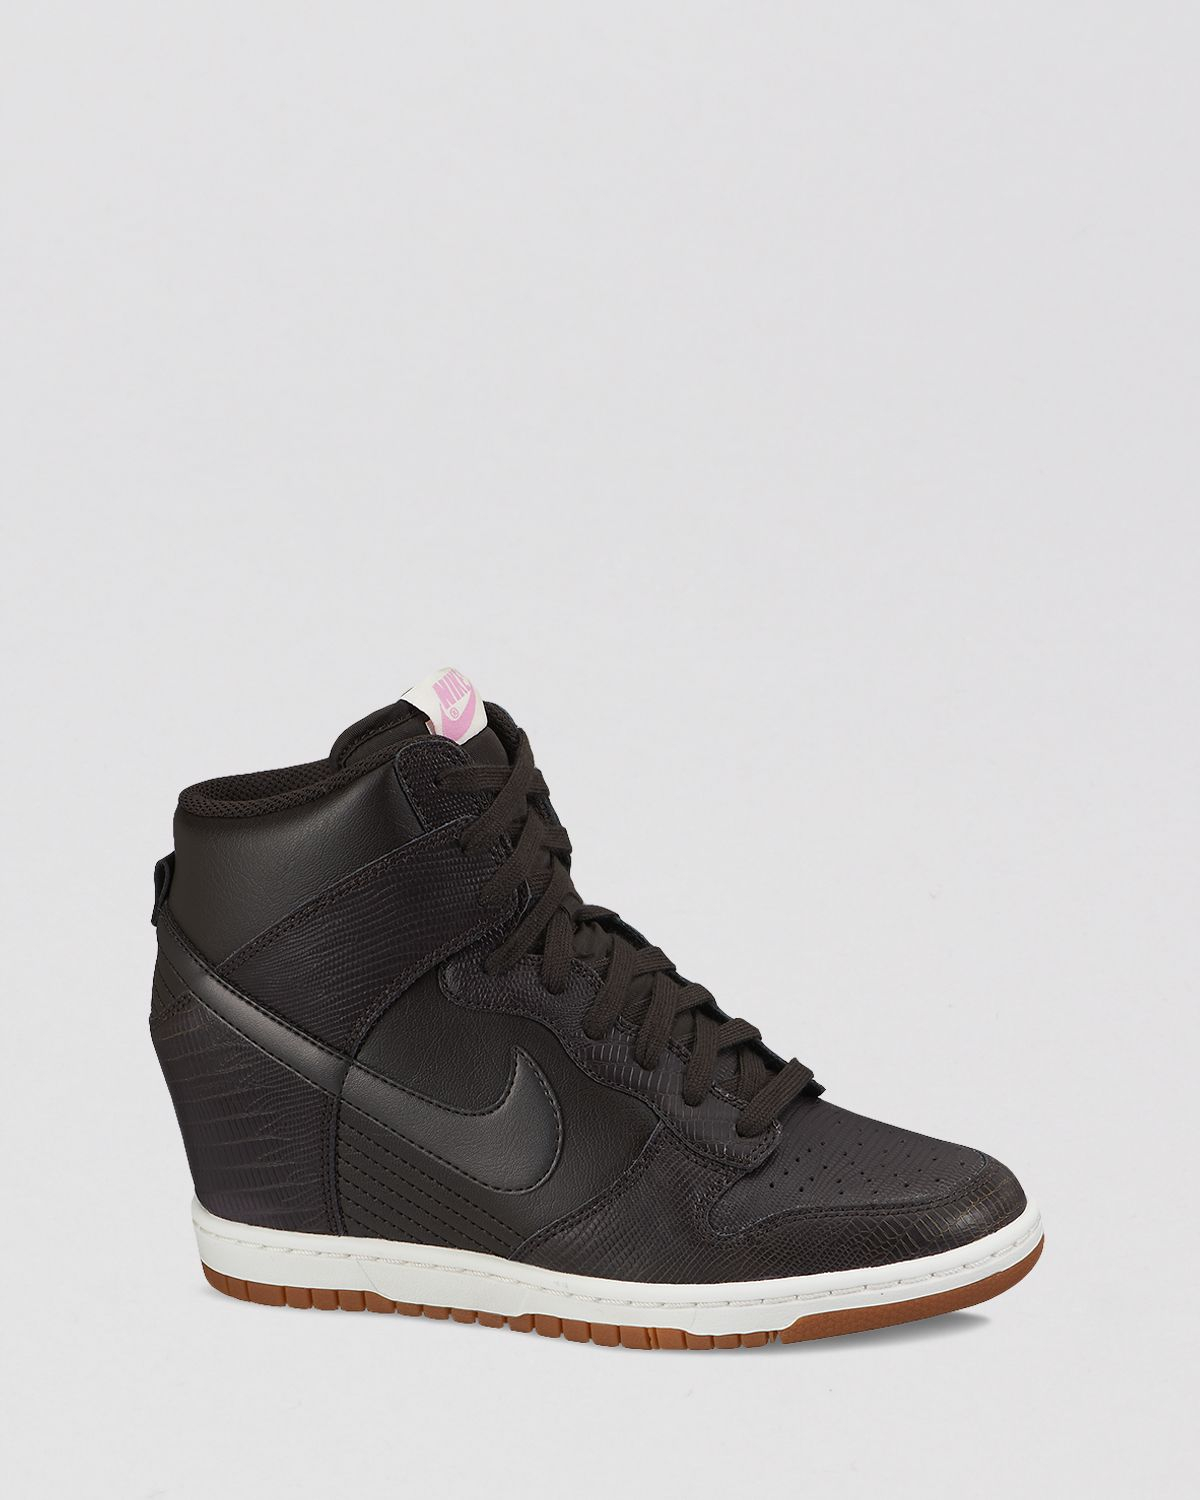 meet 38524 d72b1 Gallery. Previously sold at  Bloomingdale s · Women s Wedge Sneakers  Women s Nike Dunk Women s Nike Dunk Sky Hi ...